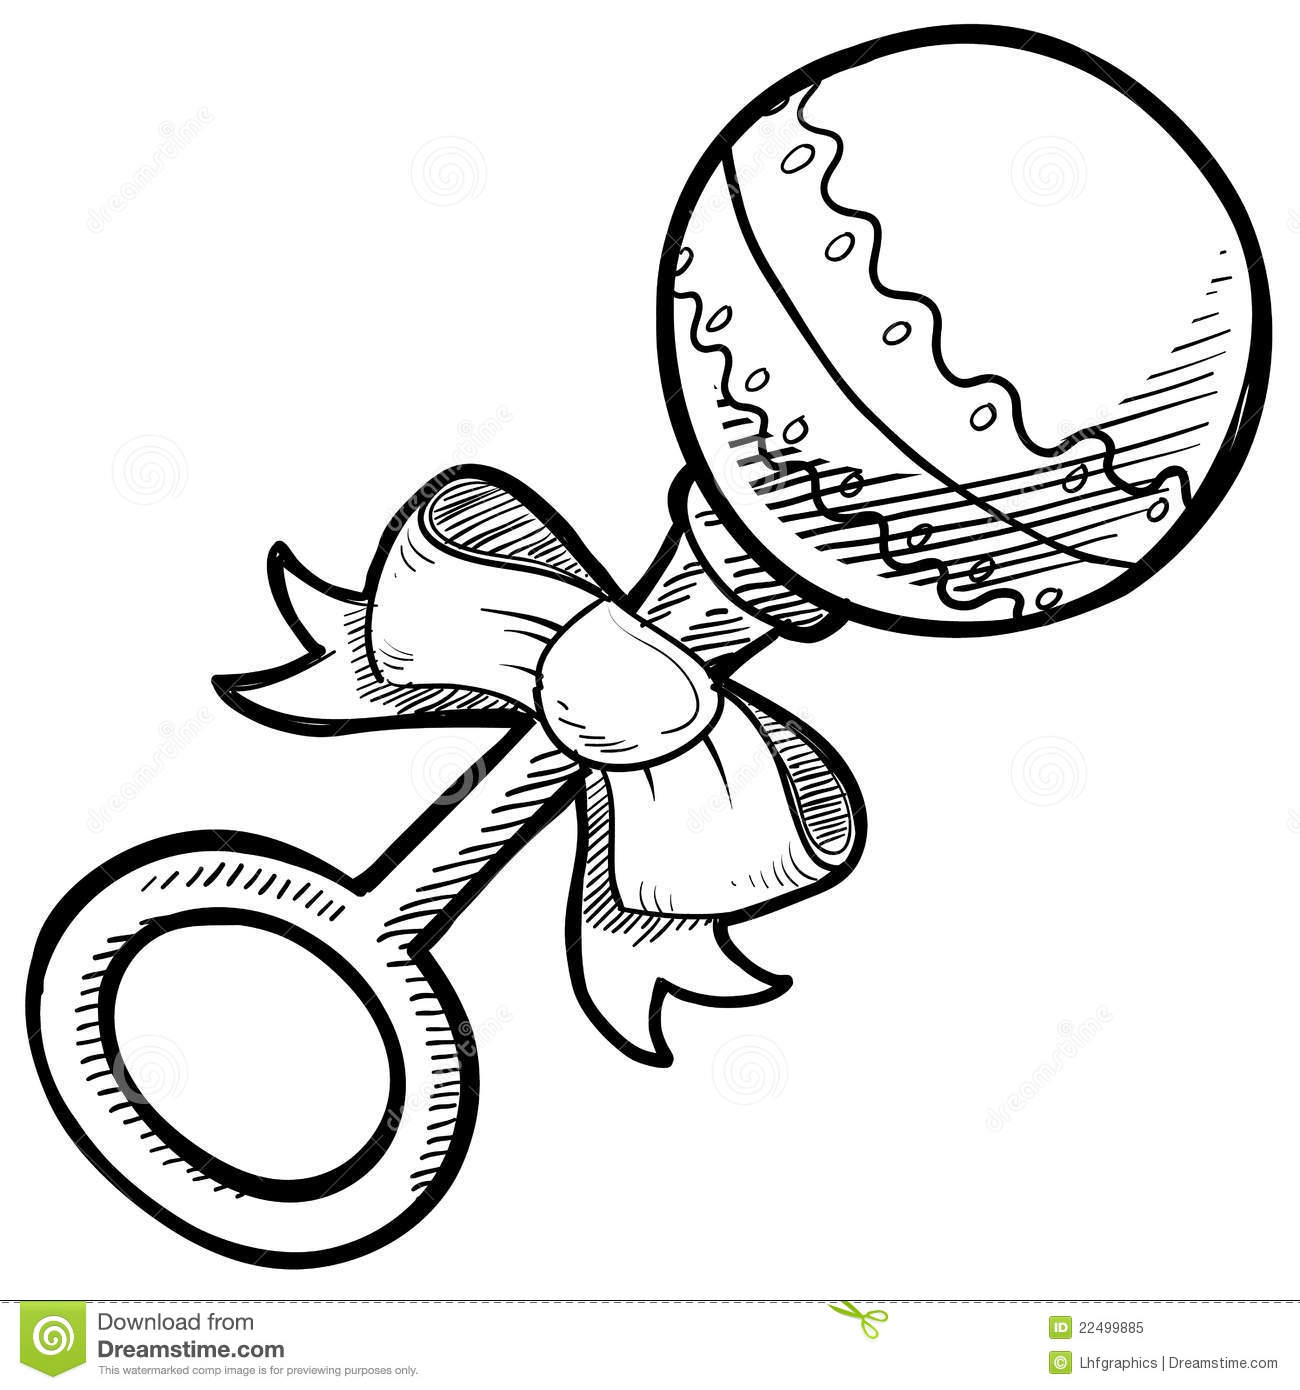 Baby Toys Drawing : Baby rattle drawing stock vector illustration of shaker